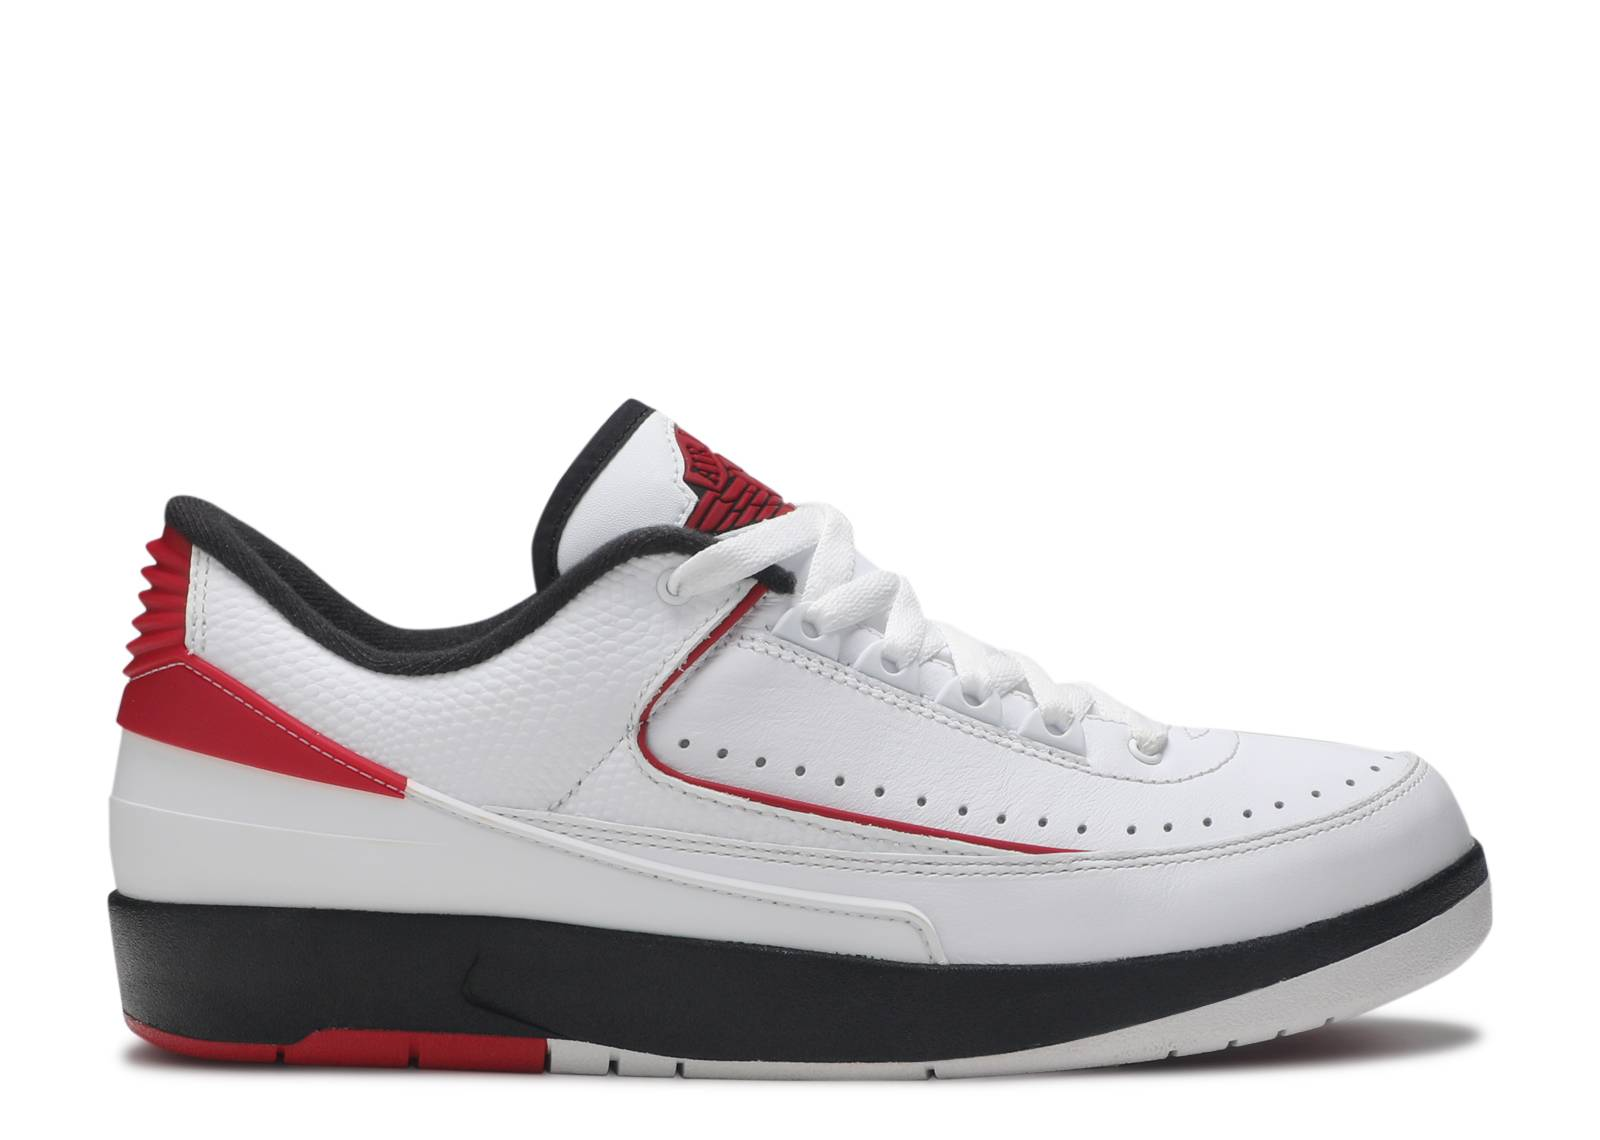 detailed look 8557a e0482 air jordan 2 retro low